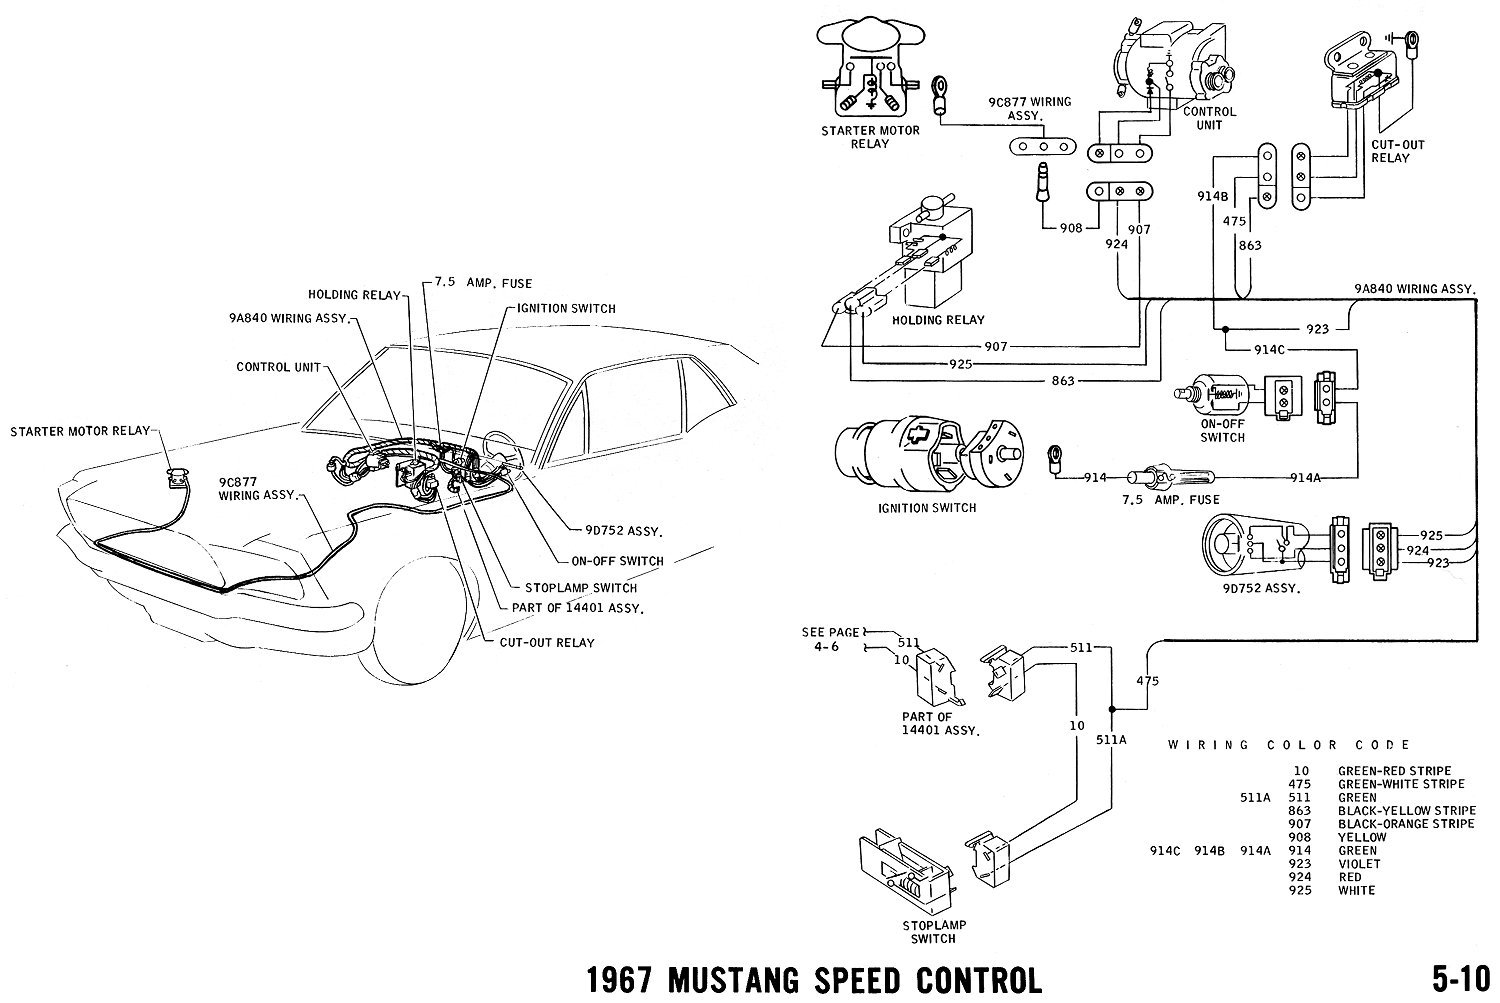 1967 mustang wiring and vacuum diagrams average joe restoration rh averagejoerestoration com 67 Mustang Color Charging System Diagram 68 mustang alternator wiring diagram